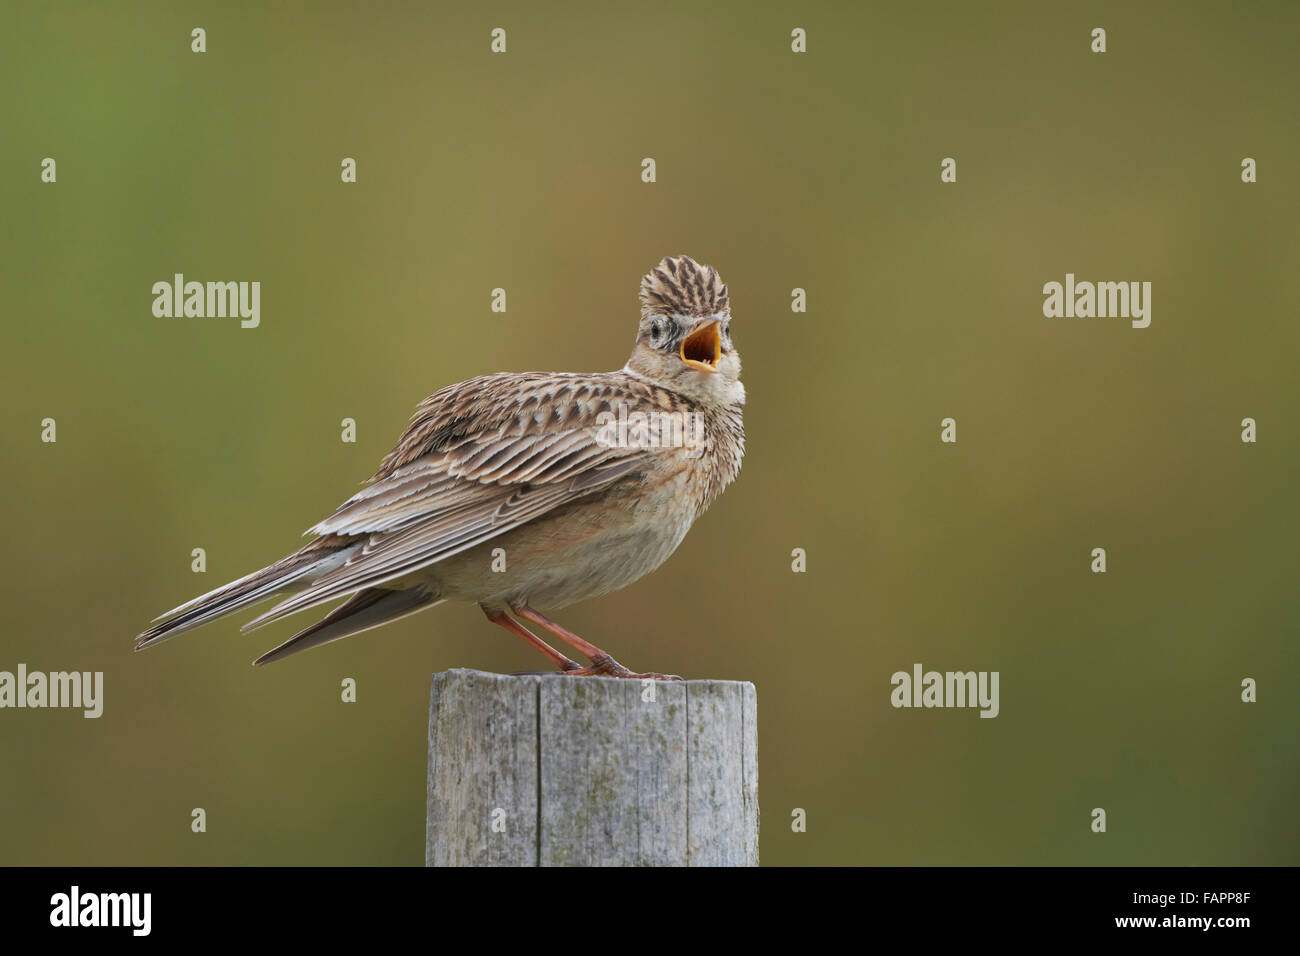 SkyLark Alauda arvensis,adult singing from post,Nottinghamshire,UK - Stock Image